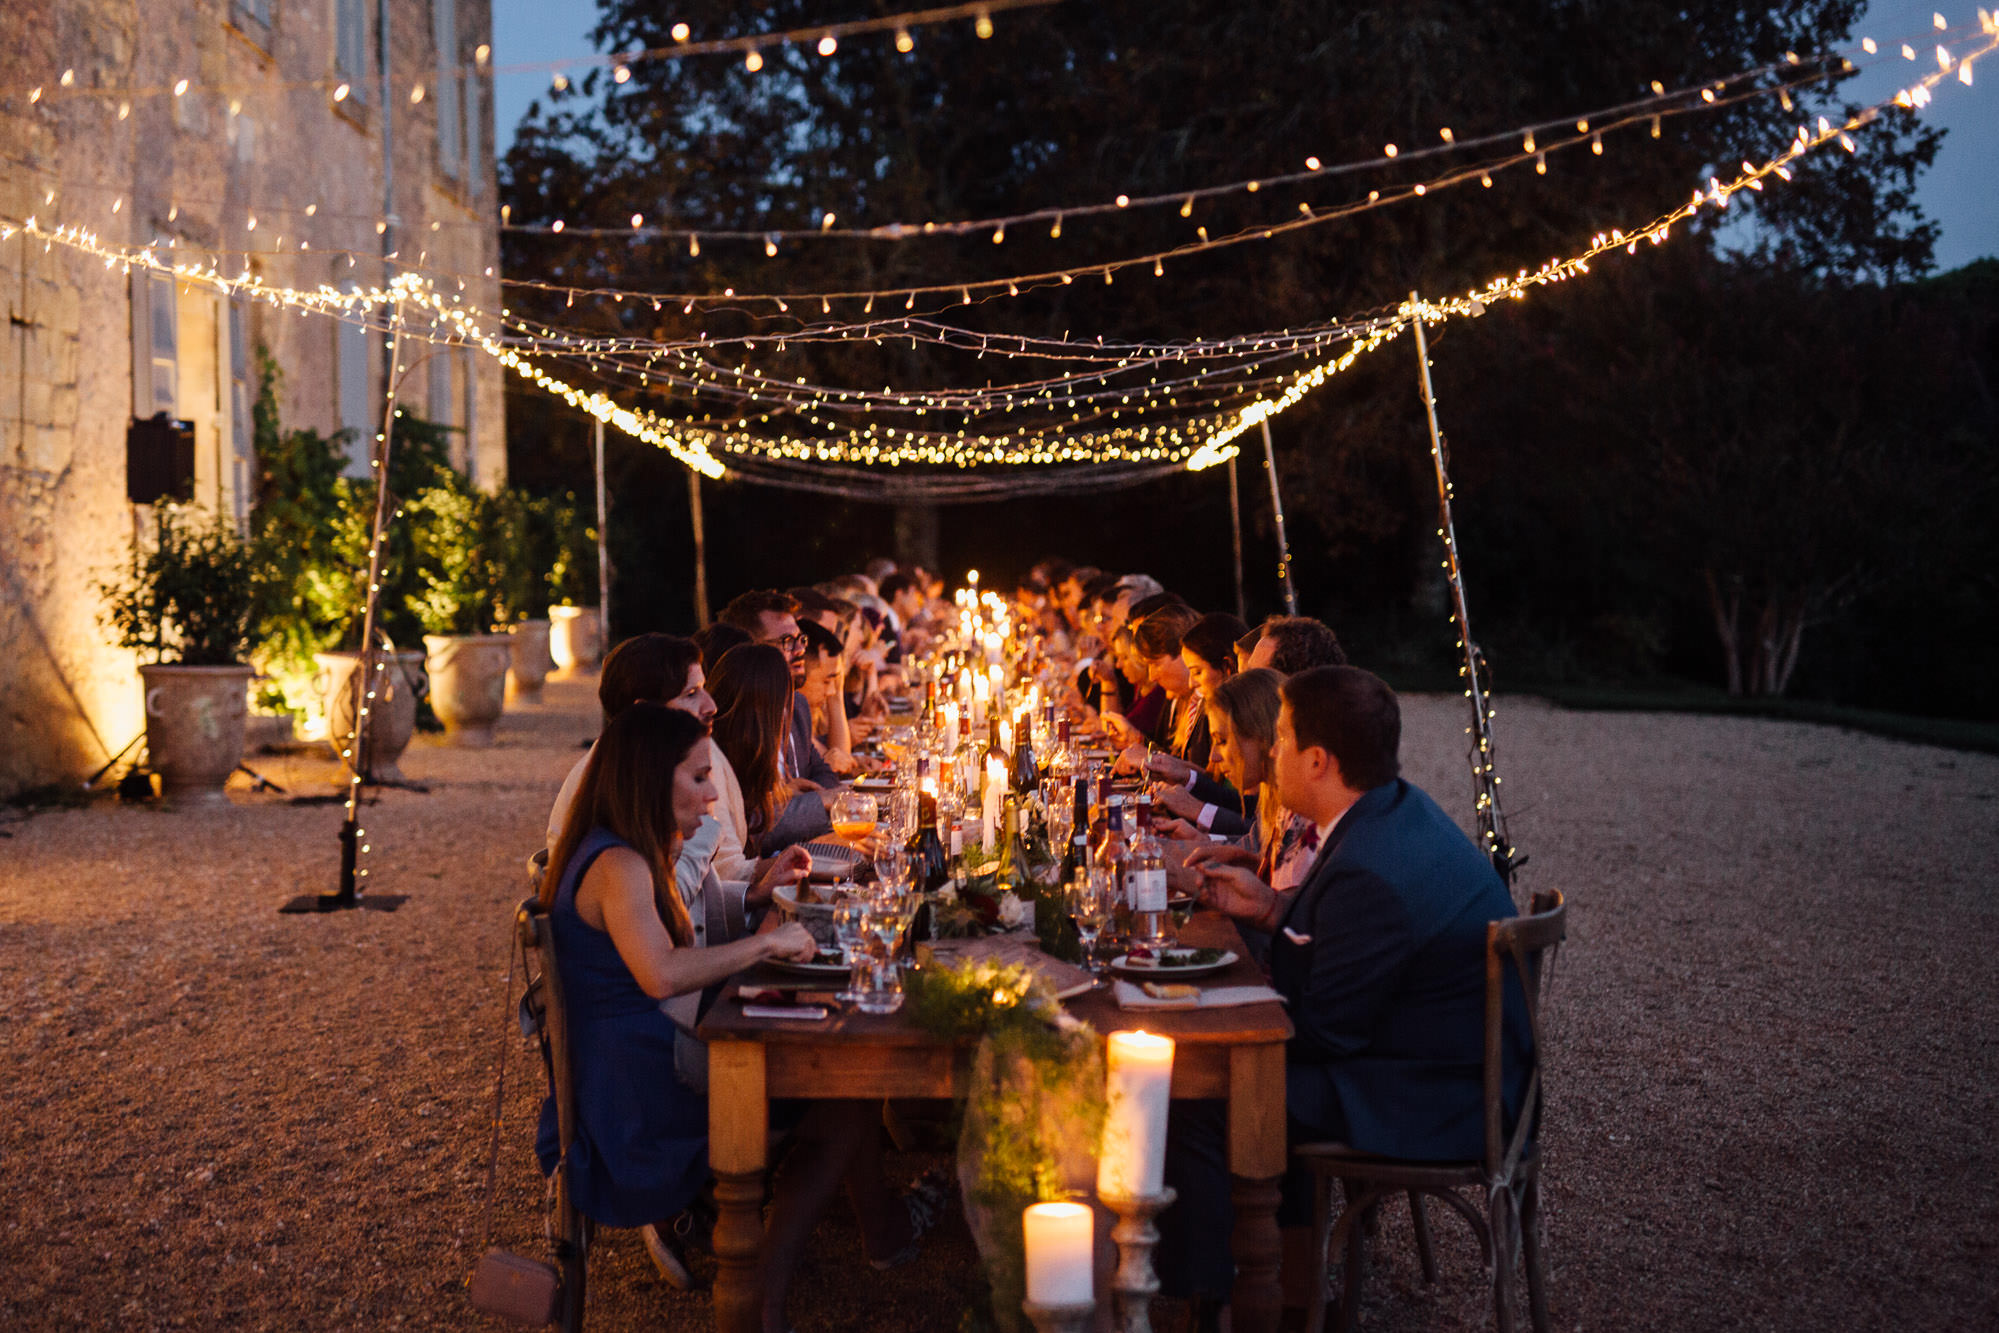 An Enchanting French Chateau Wedding With an Outdoor Feast